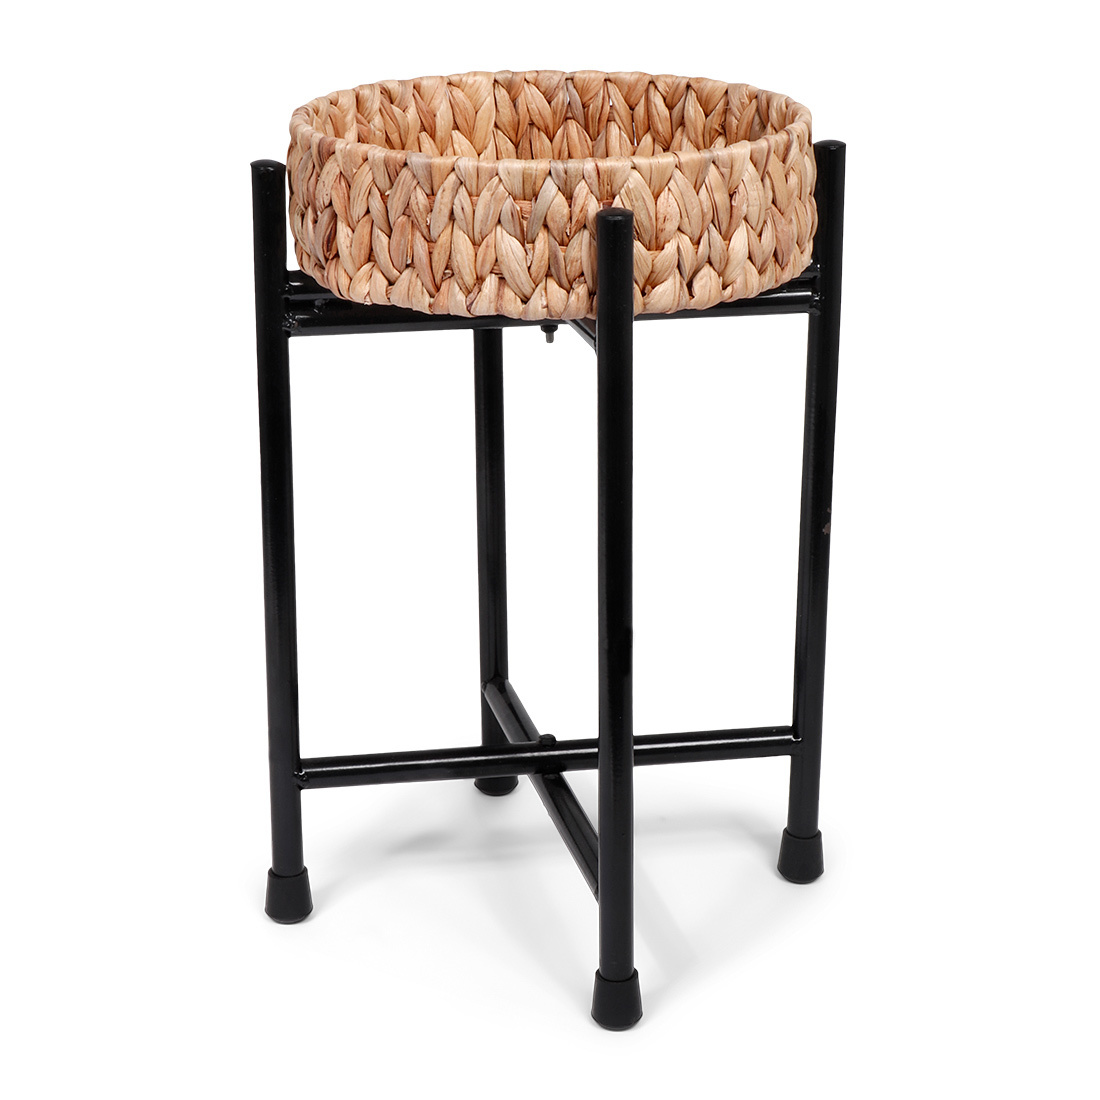 SENZA Water Hyacinth Table 24cm